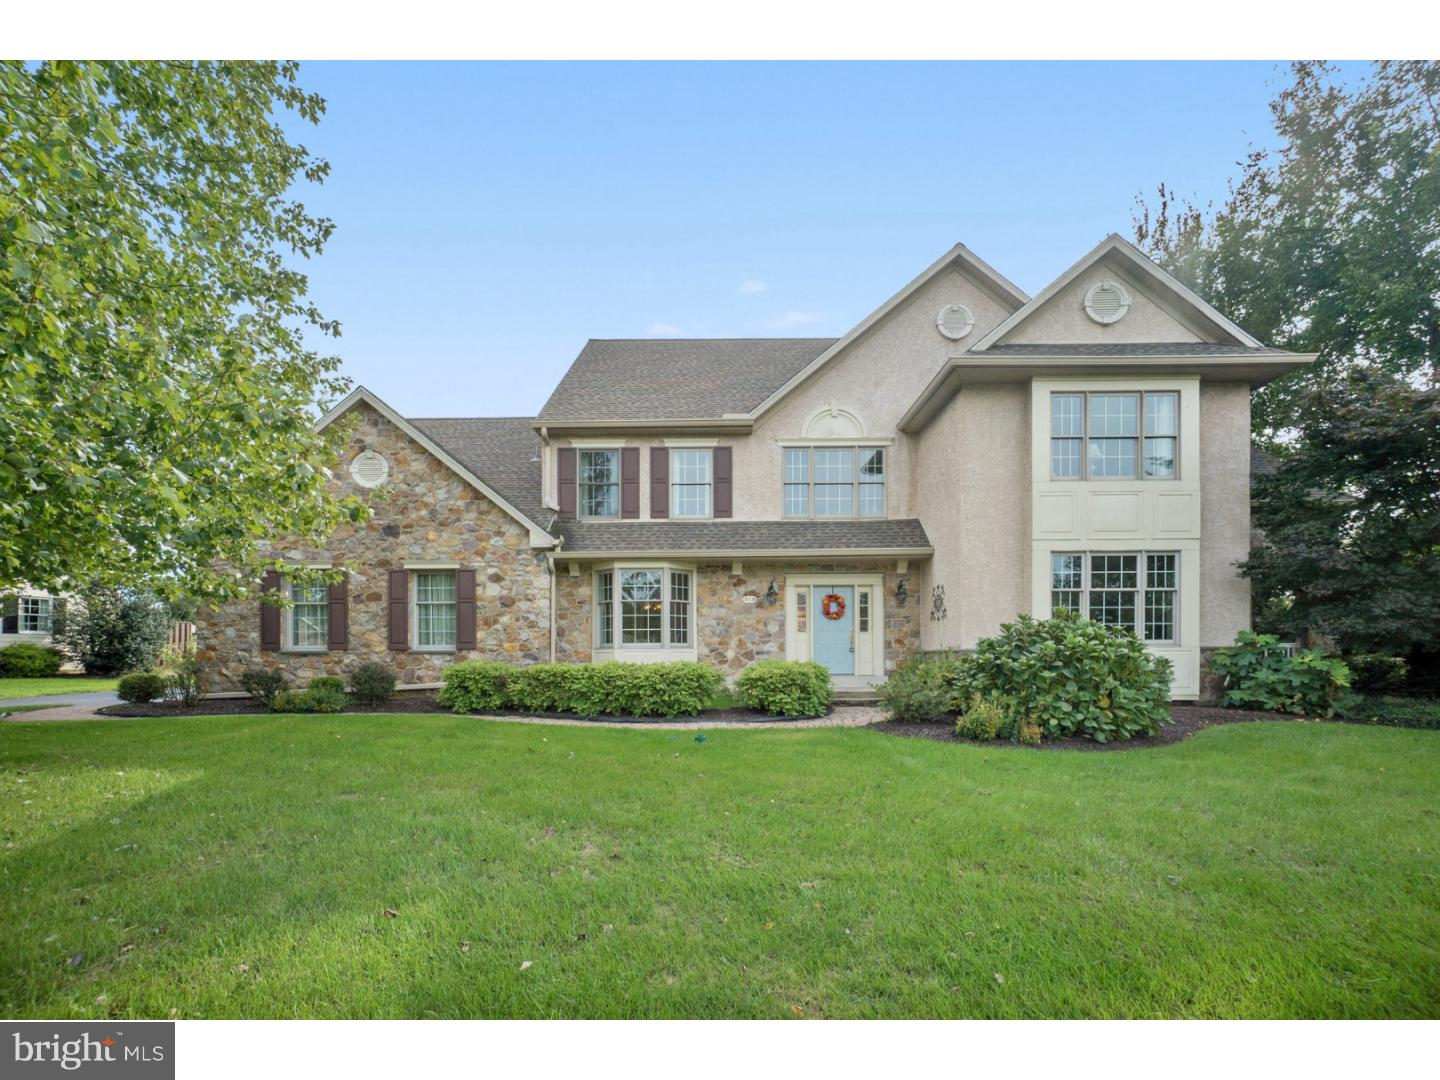 713 Yarmouth Drive West Chester, PA 19380